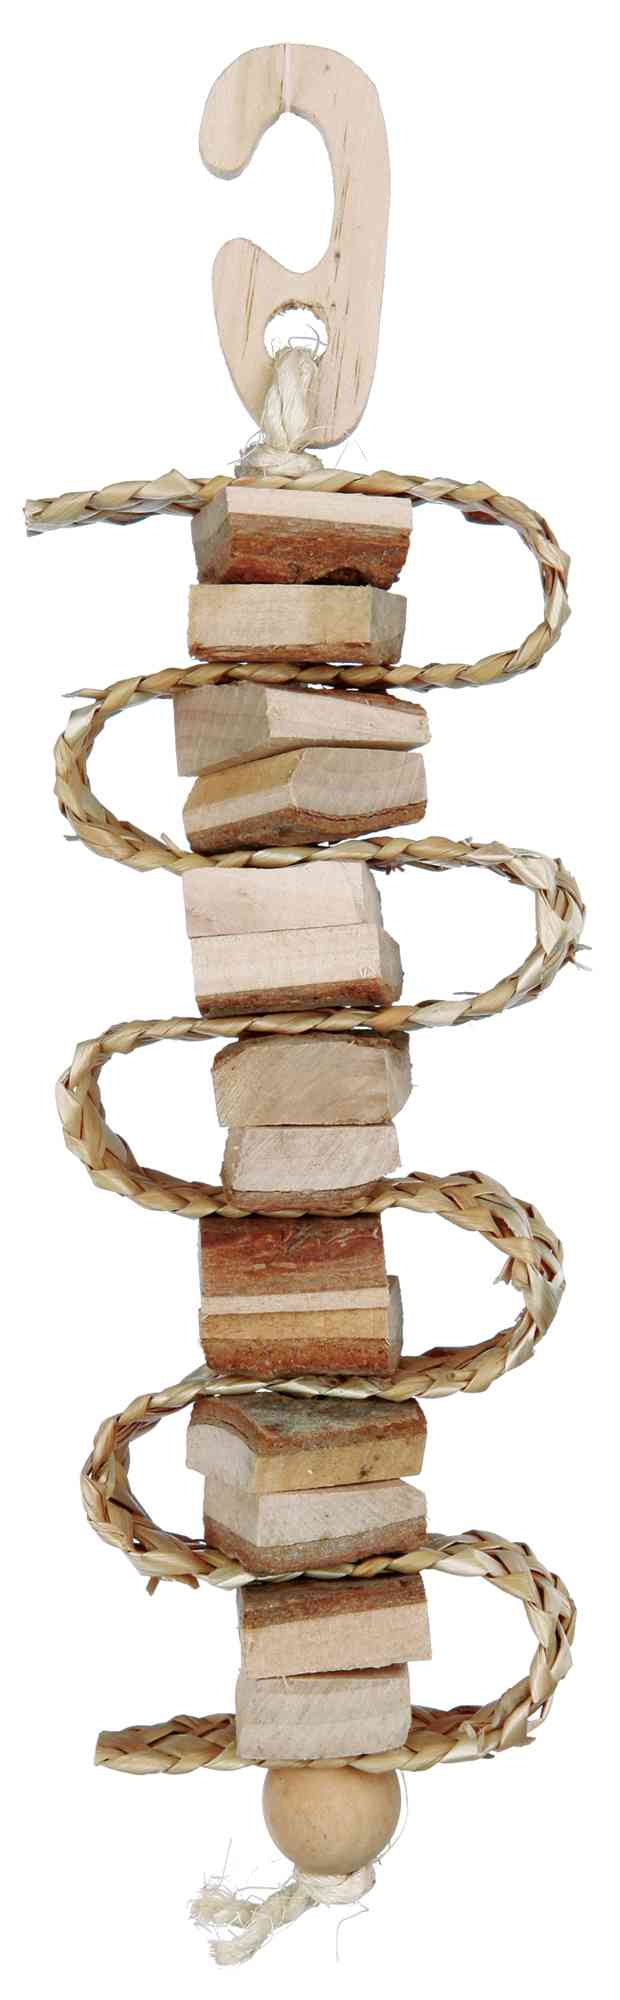 Natural Living Gnawing Wood with Straw Ribbon